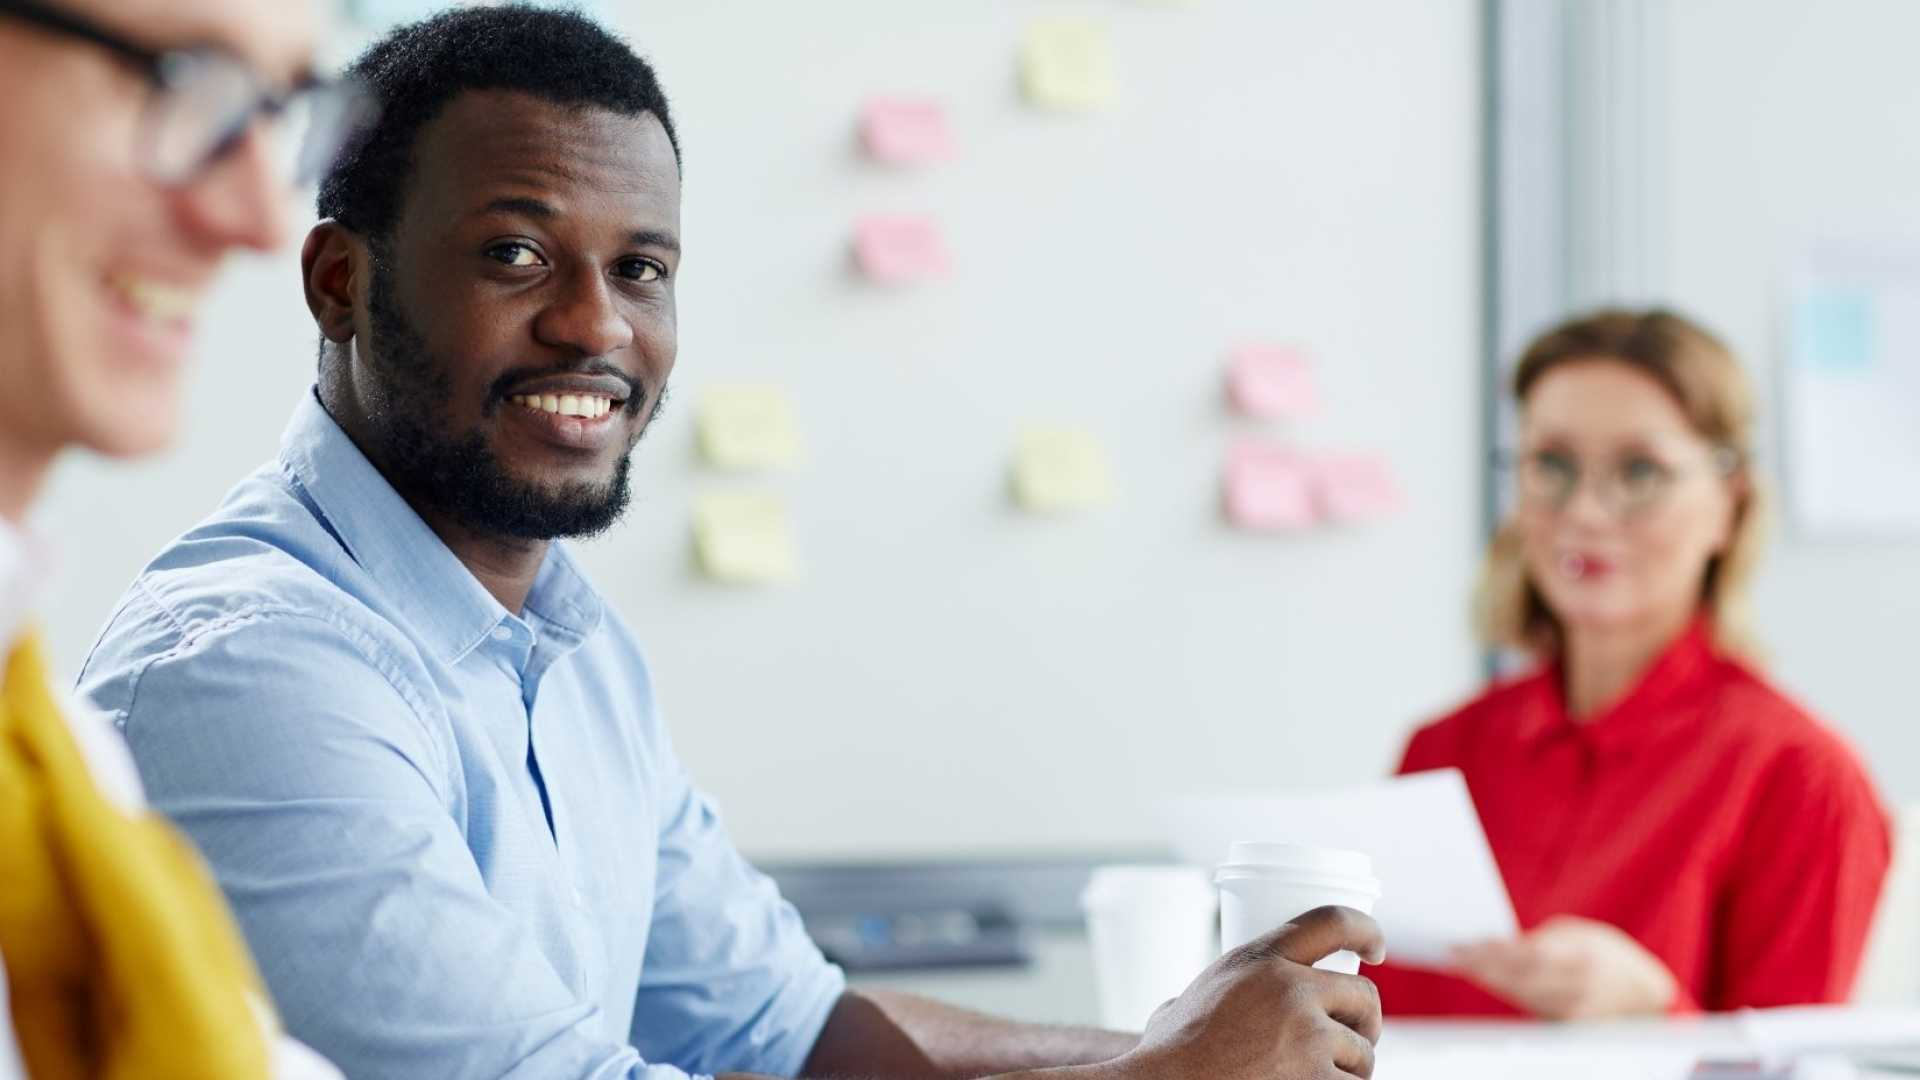 How to Get the Best Out of Your Great People